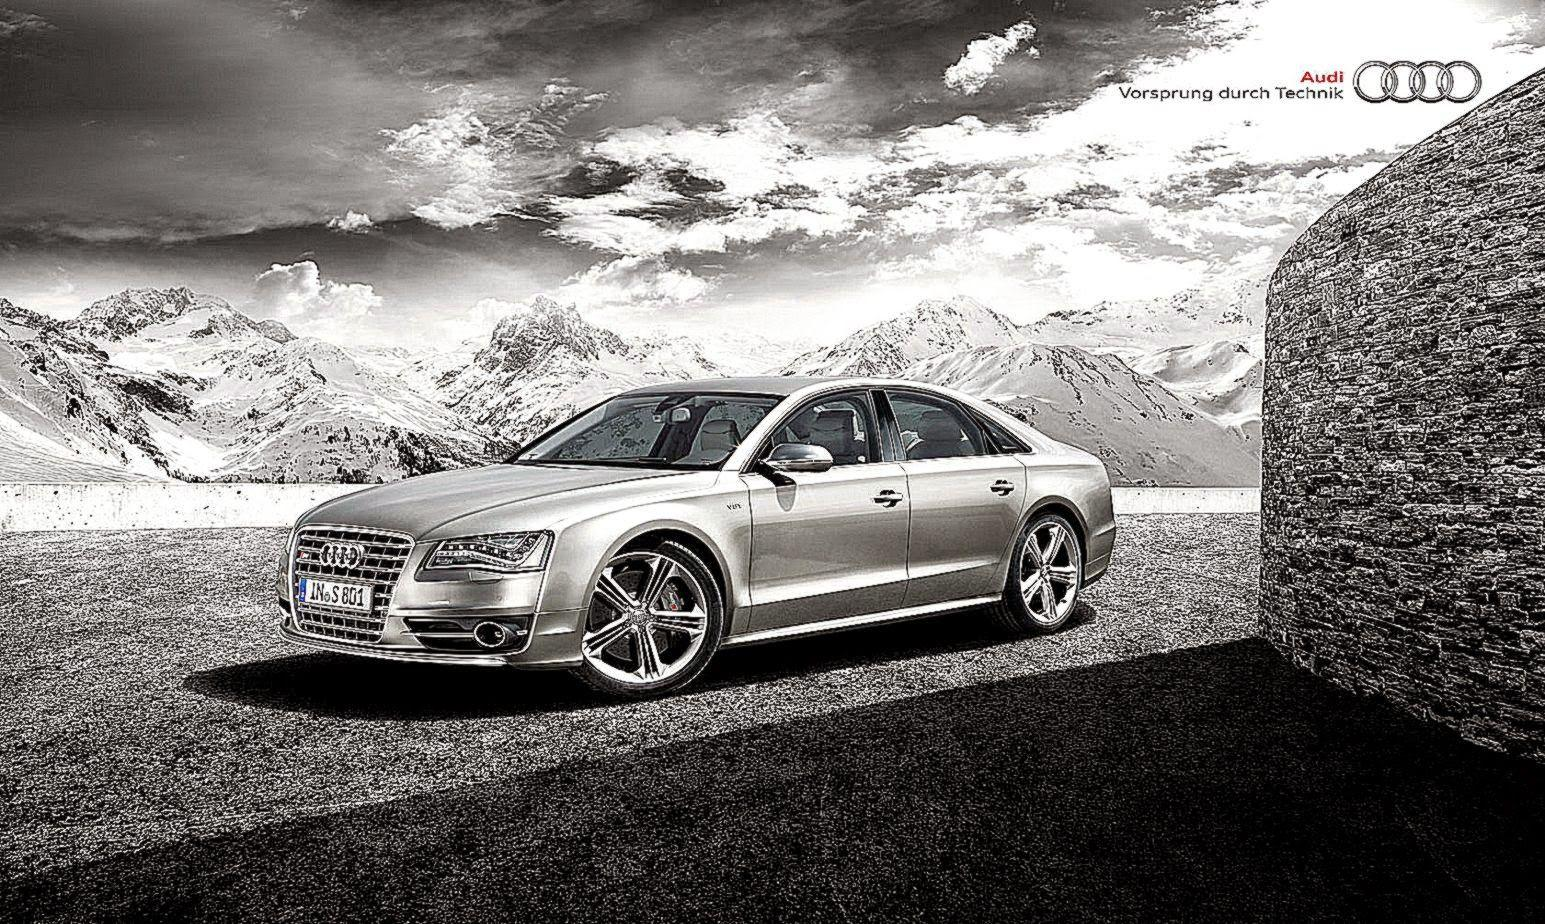 Audi S8 Poster Image